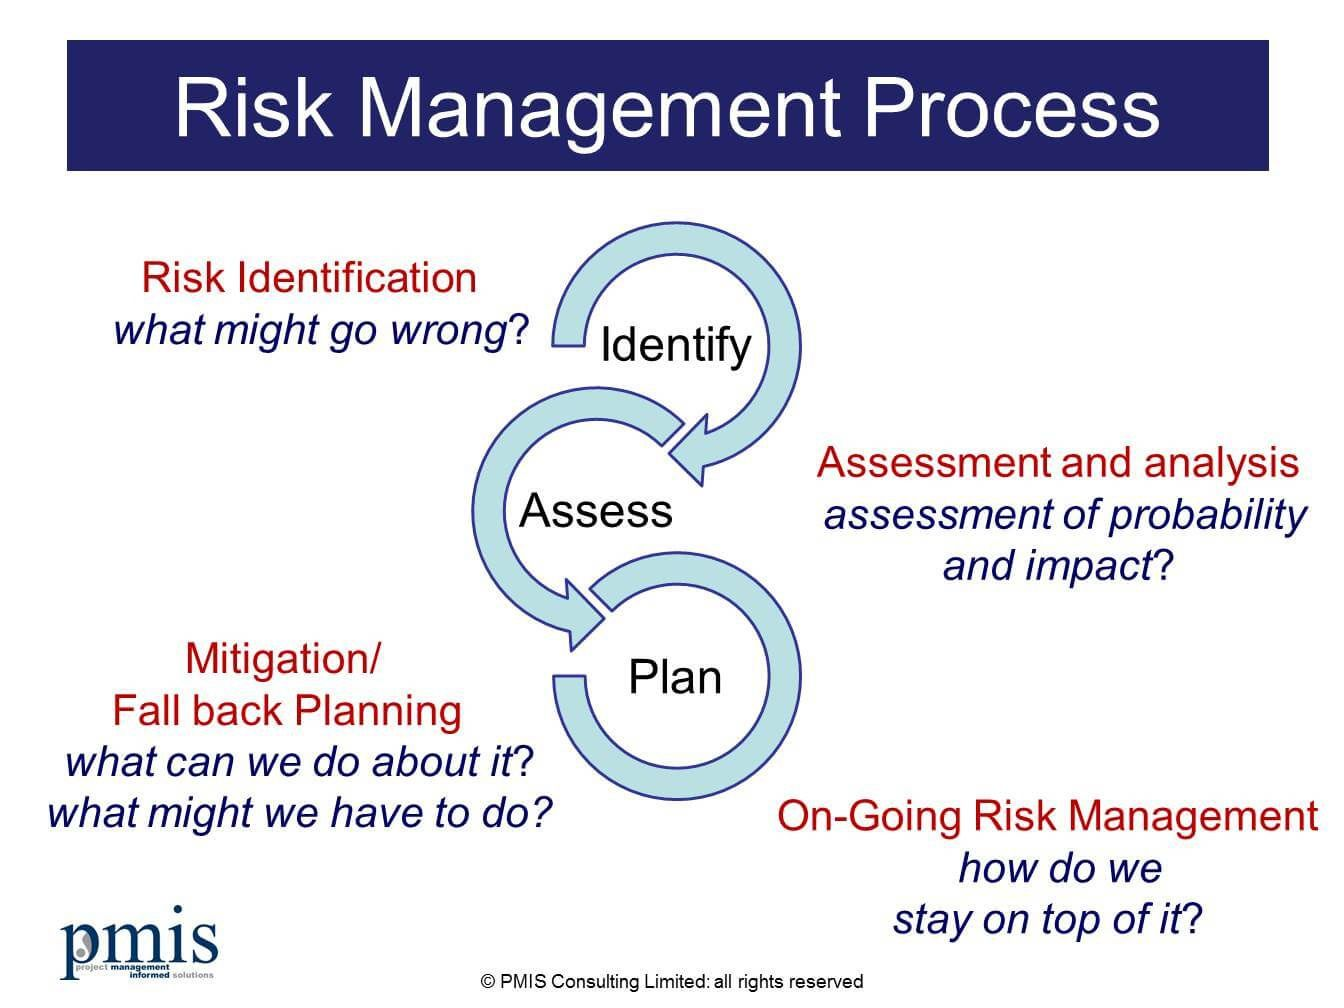 007 Awful Project Risk Management Plan Template Word Highest Clarity Full